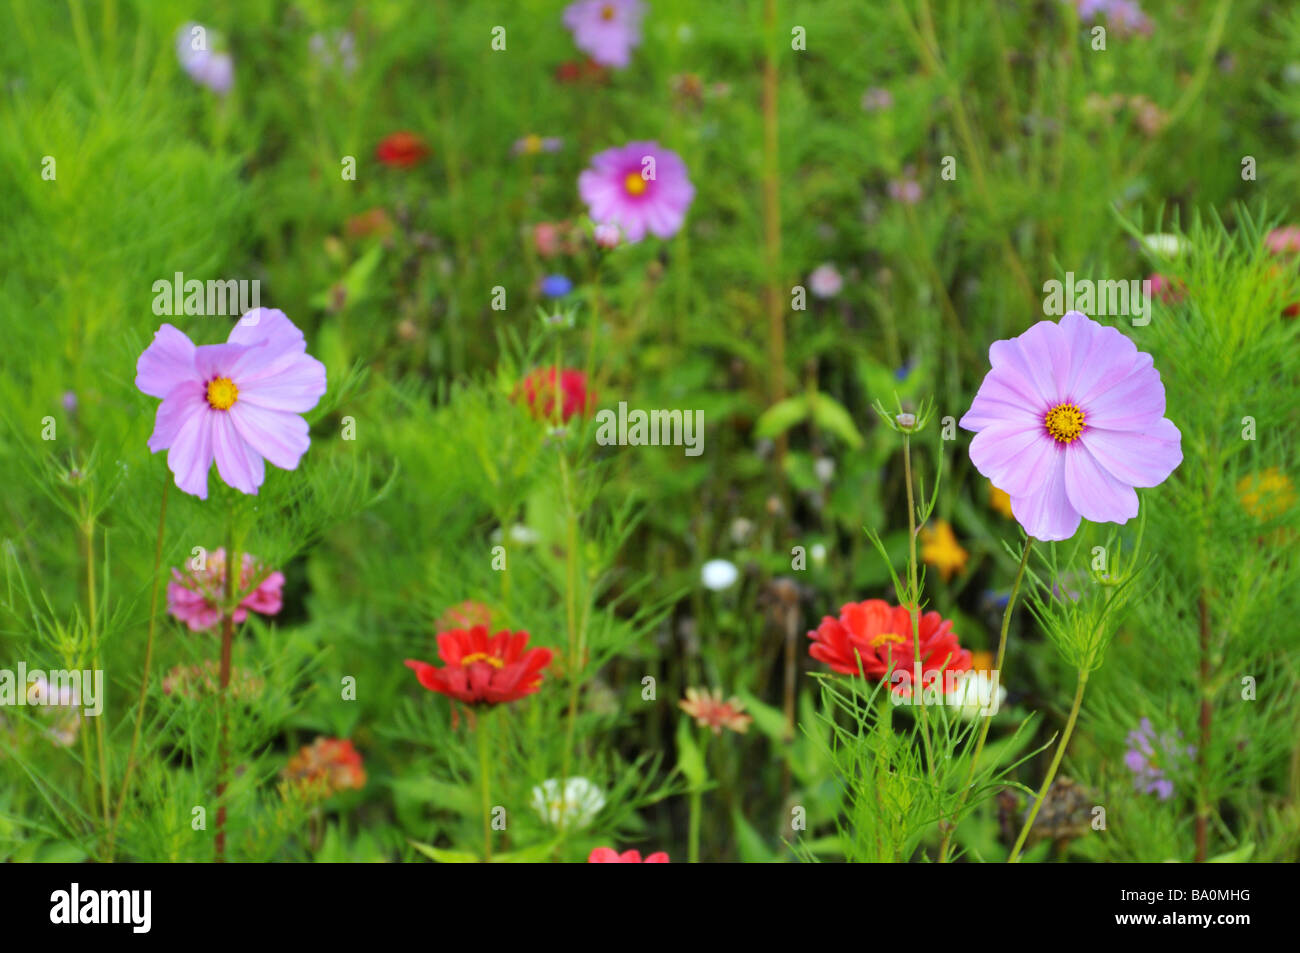 Cosmos bipinnatus in a cottage garden. - Stock Image